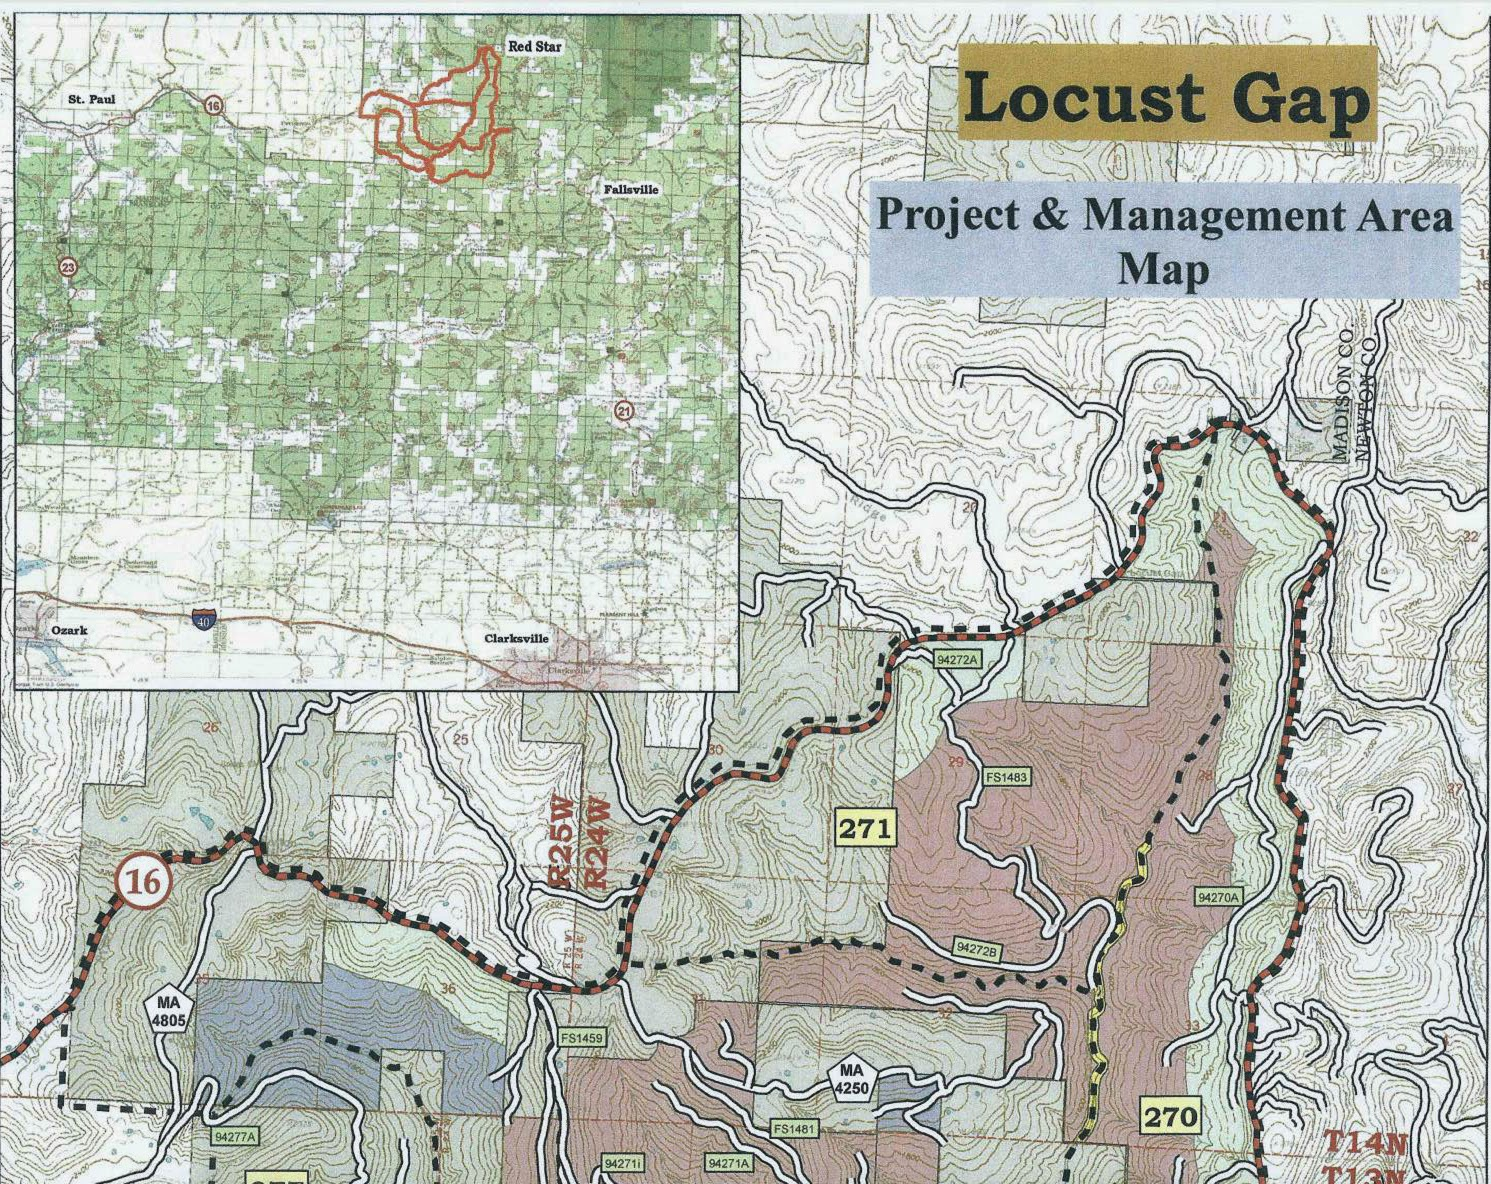 u s forest service plan to log locust gap area of ozark national forest